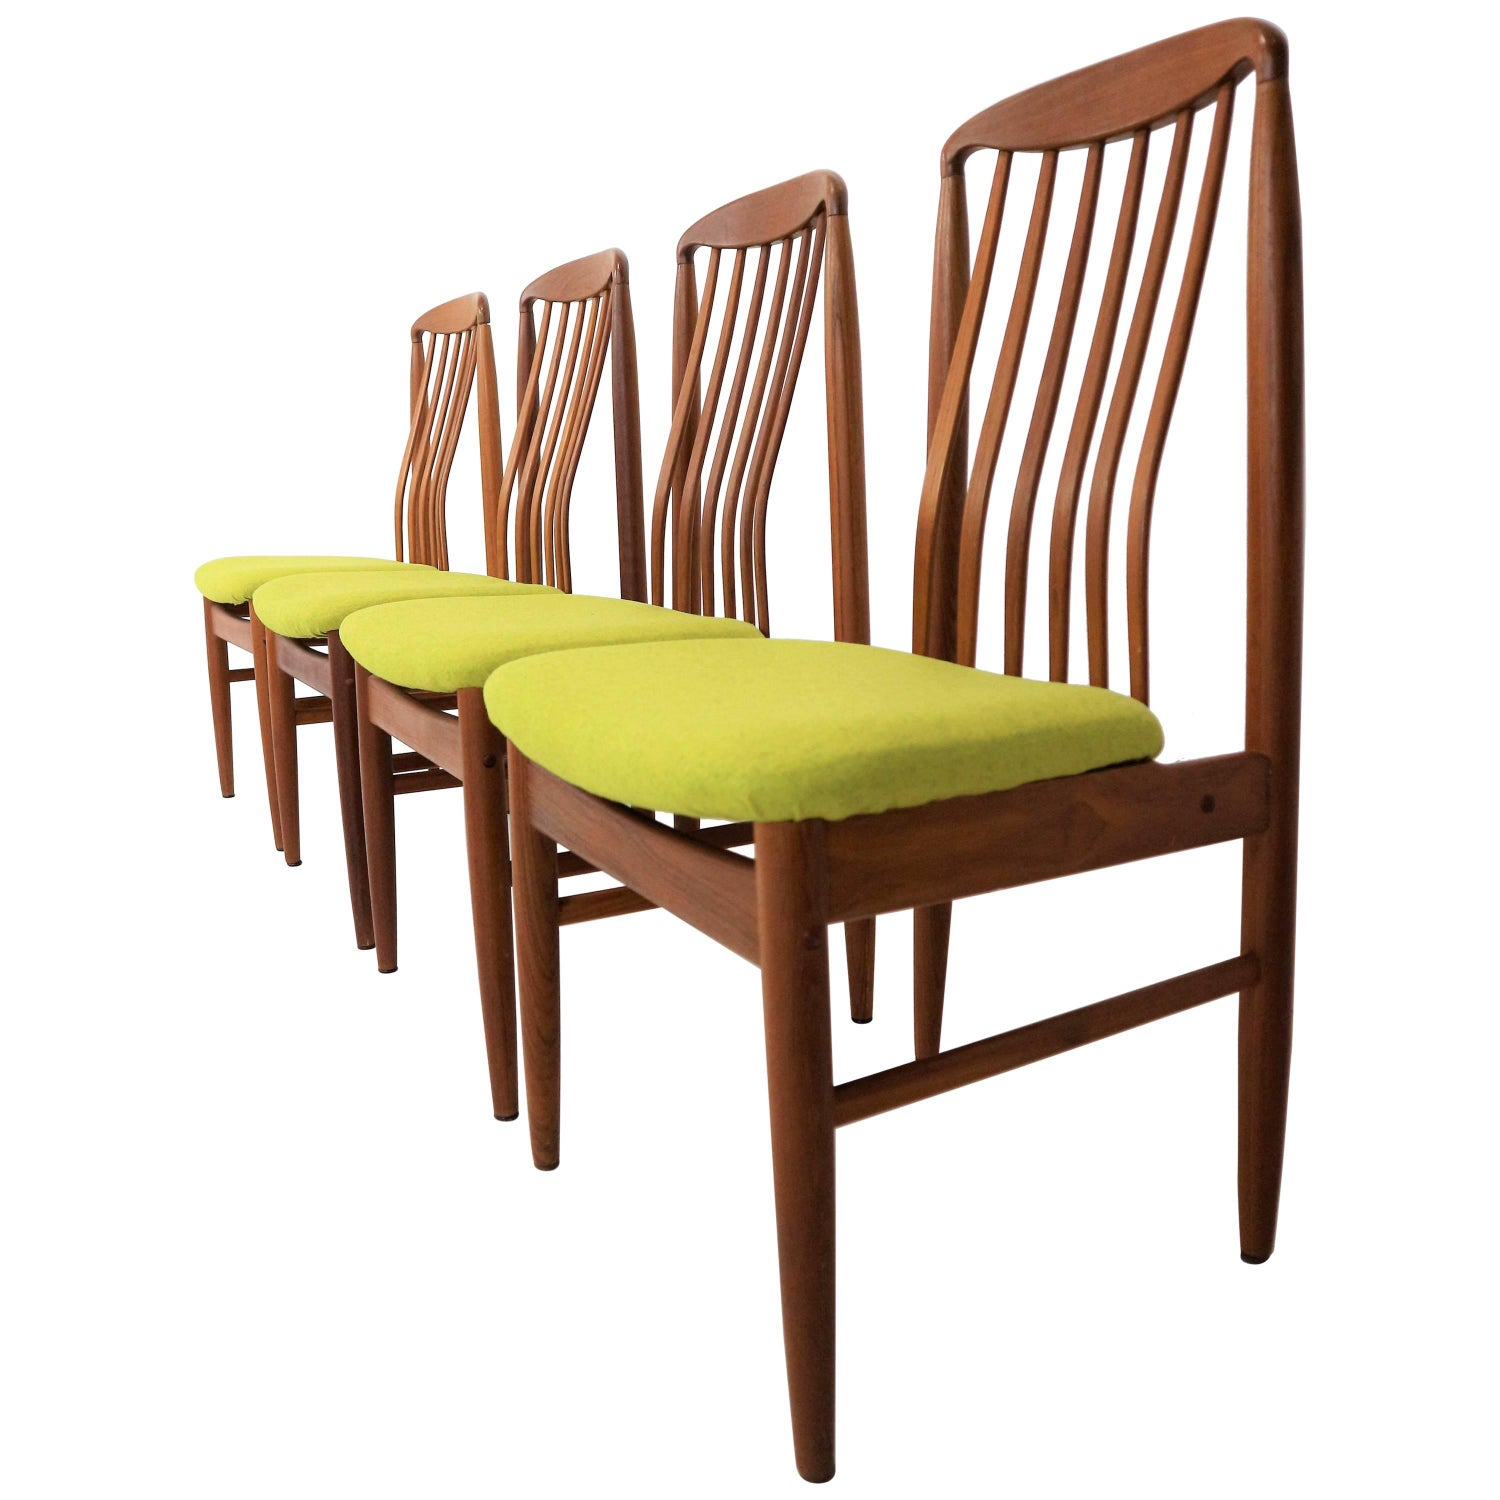 Six Danish Modern Teak Dining Chairs by Benny Linden For Sale at